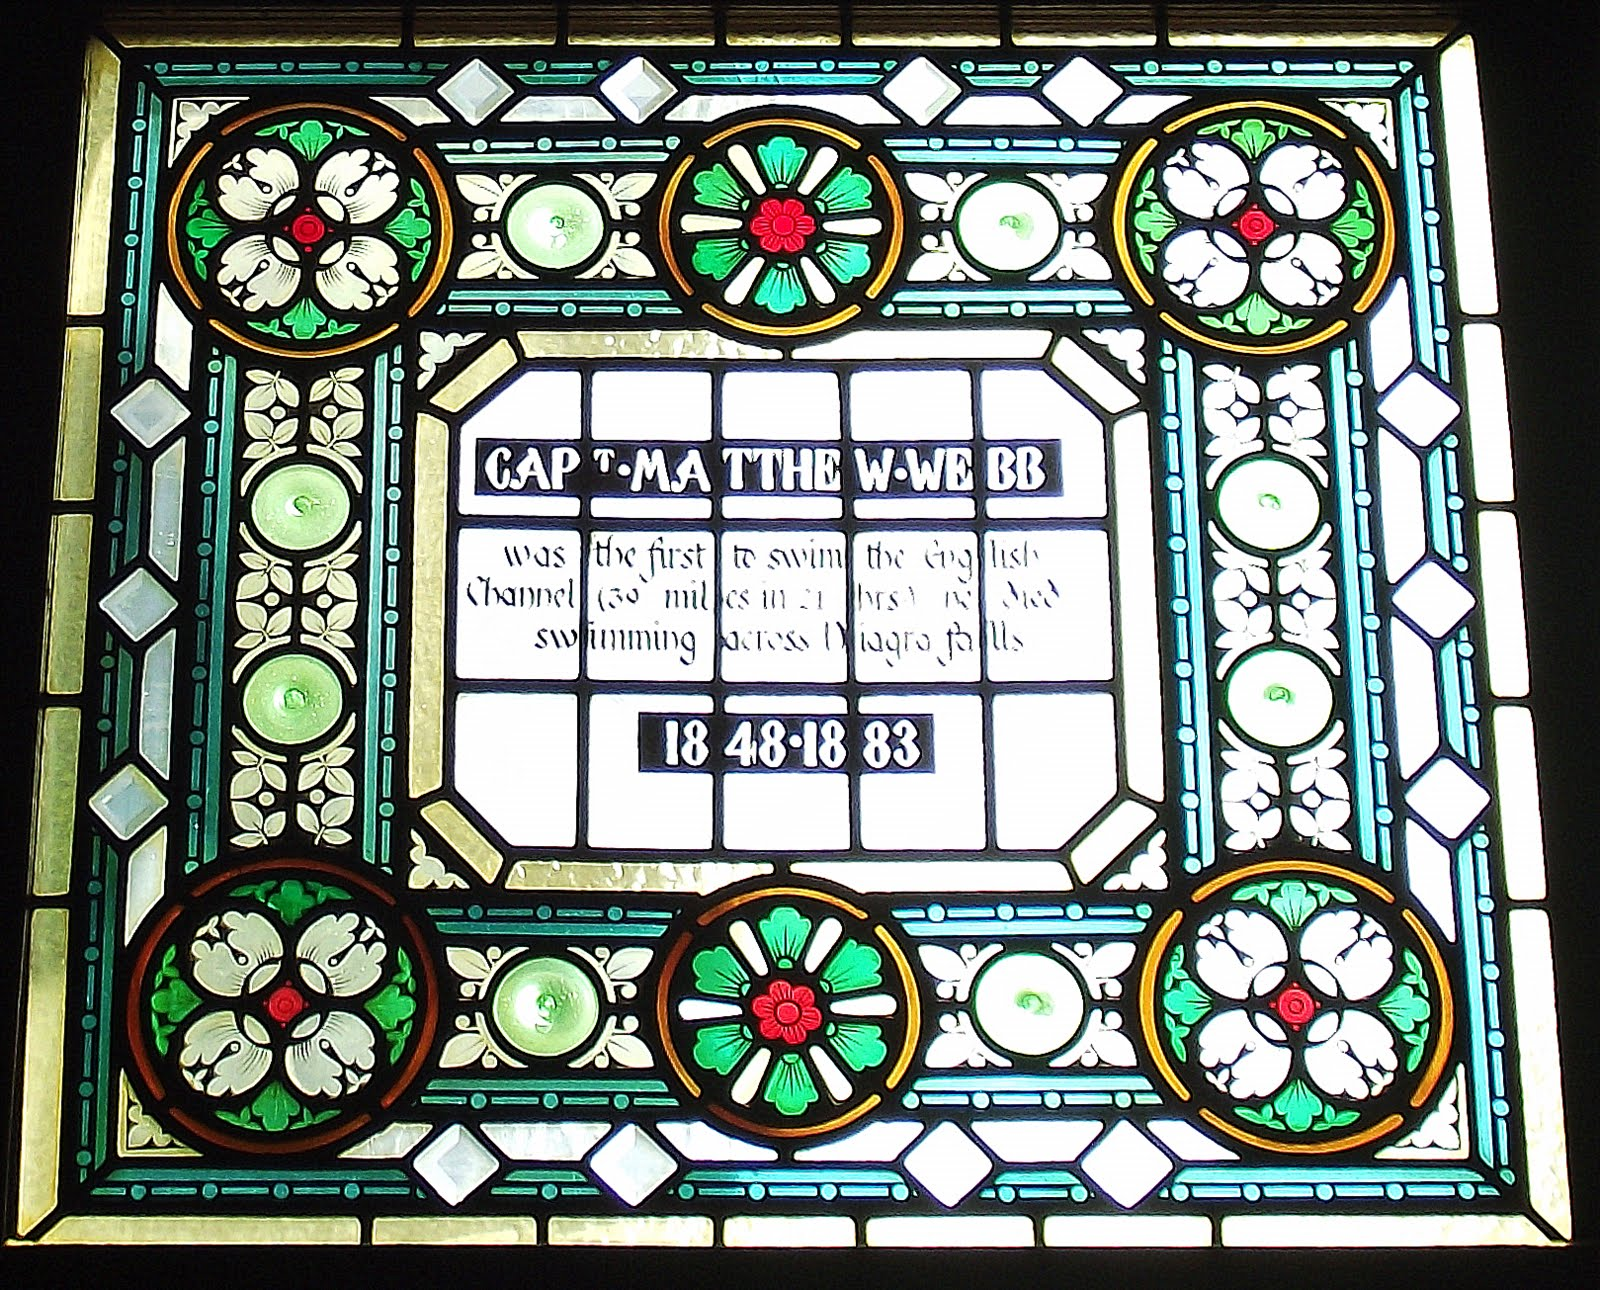 Matthew Webb stained glass at The Champion Pub